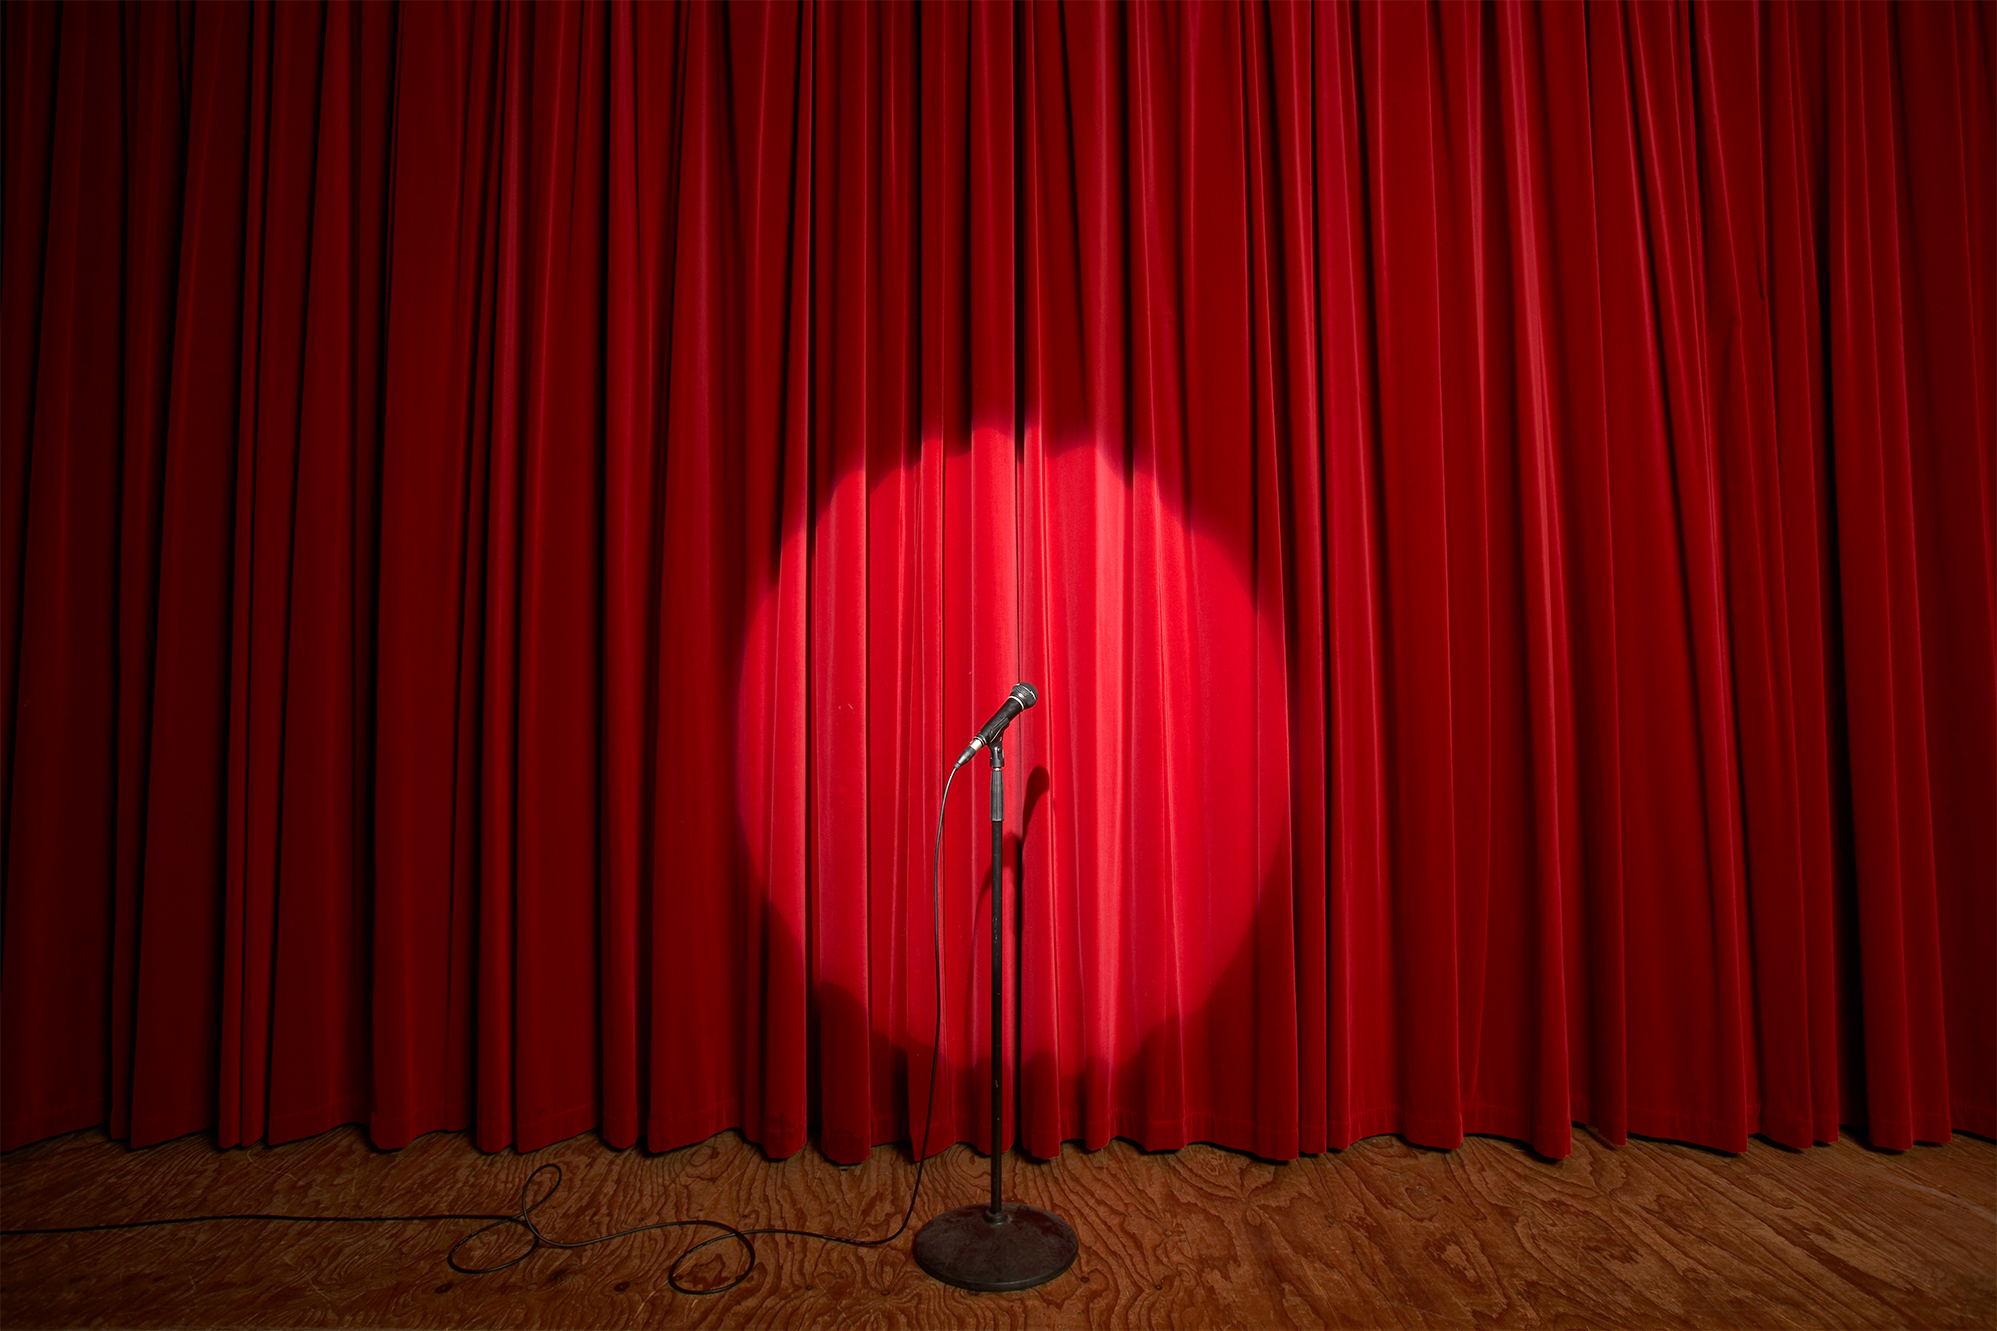 Stage with red curtain and microphone